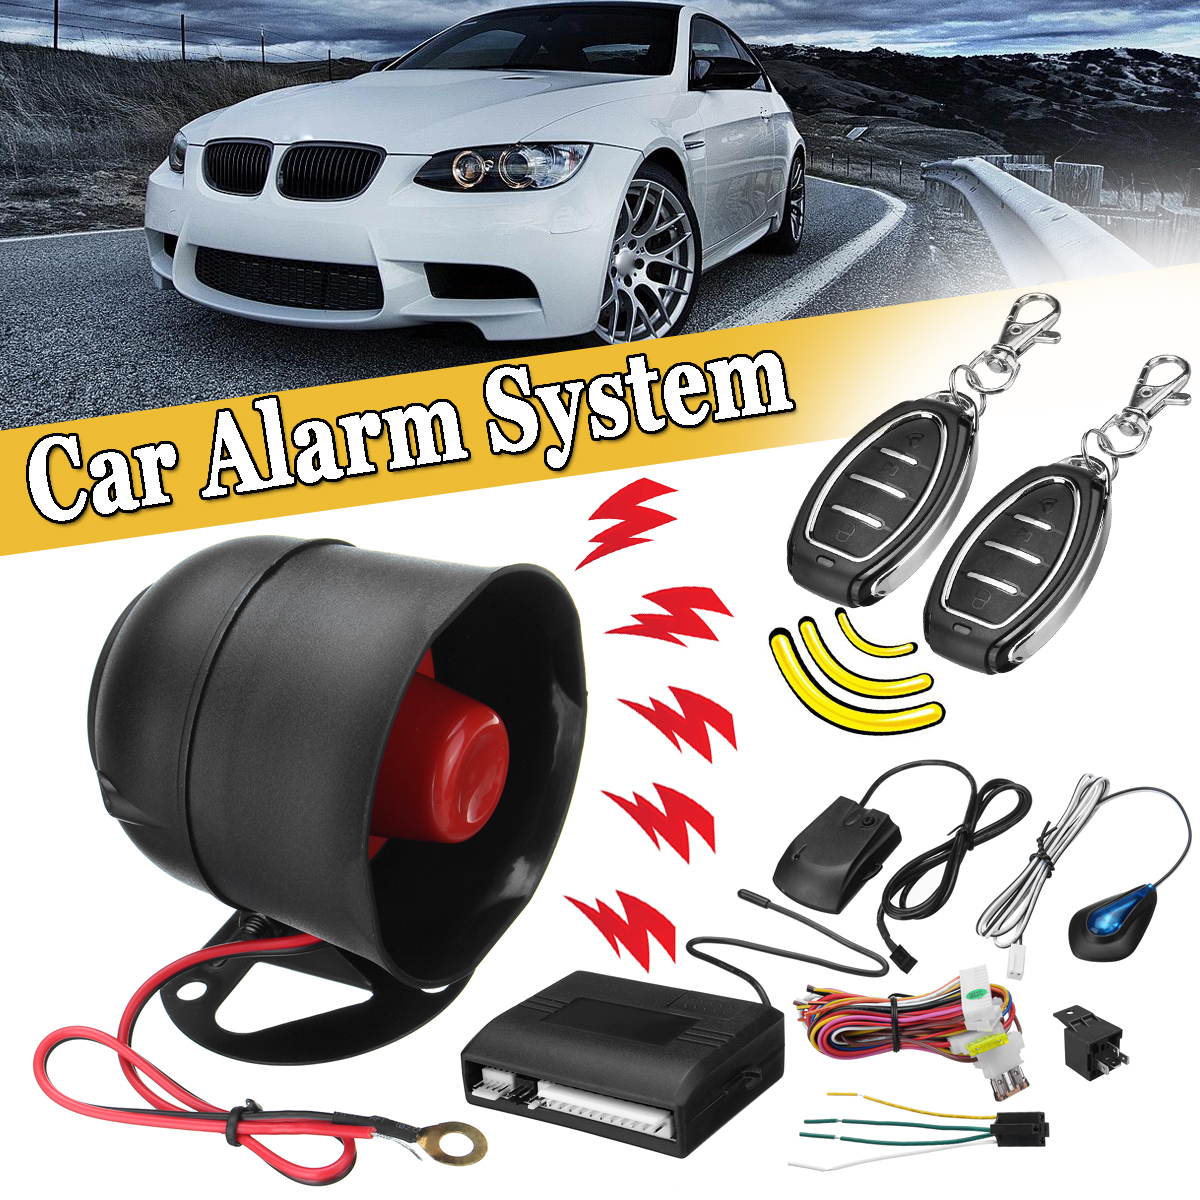 Car Central Door Lock Vehicle Keyless Entry System Kit w/ 2 Remote Universal